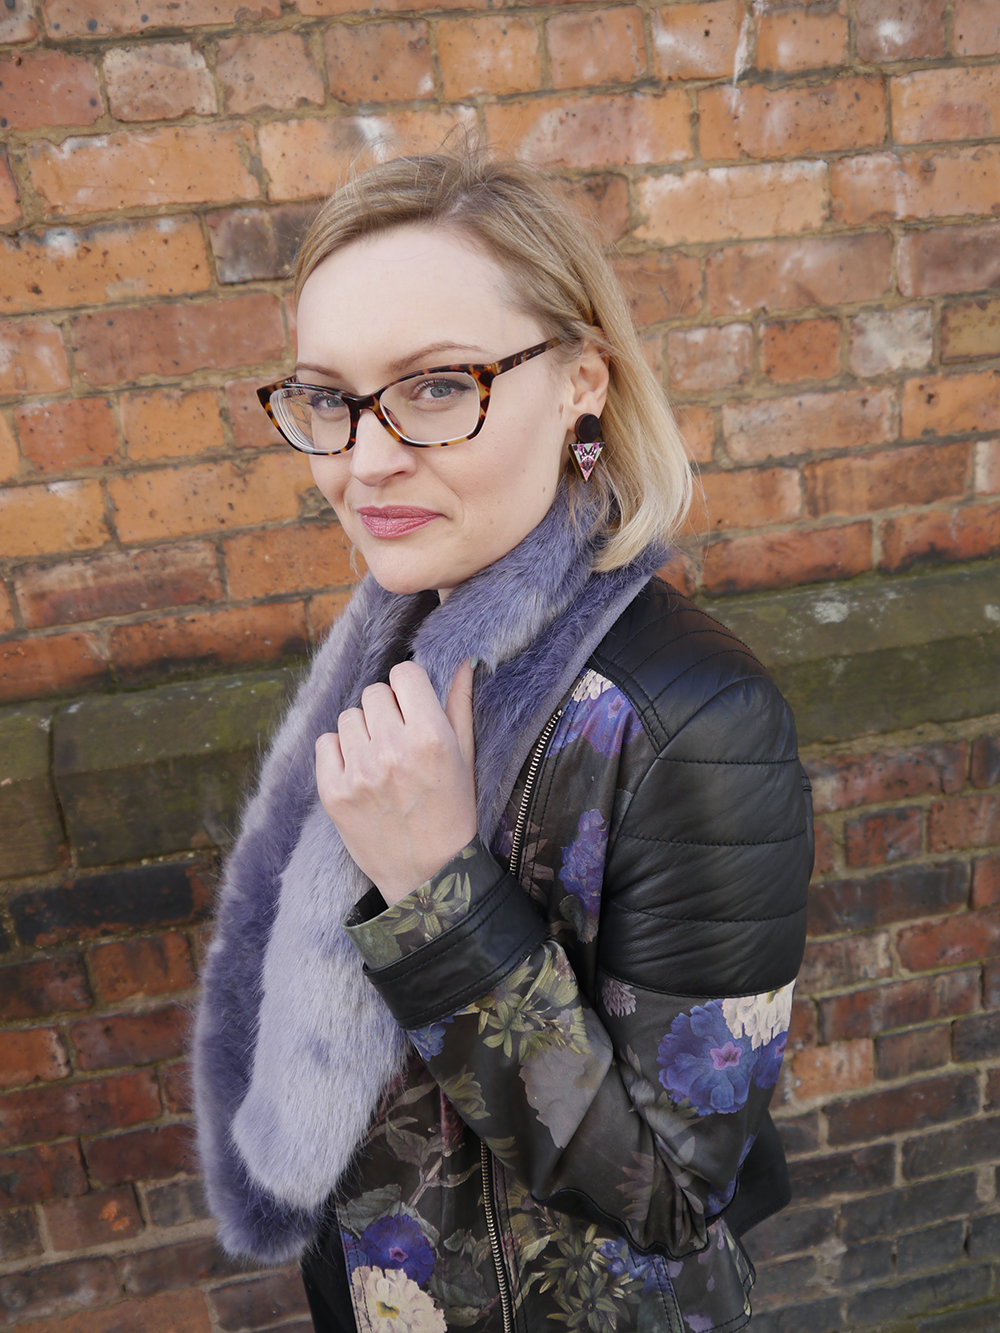 Fearne Cotton very collection, painted leather jacket, how to style a leather jacket, cool girl style inspiration, how to dress like a Cool Girl, Mica Peet earrings, IOLLA new collection glasses, Wardrobe Conversations blog,